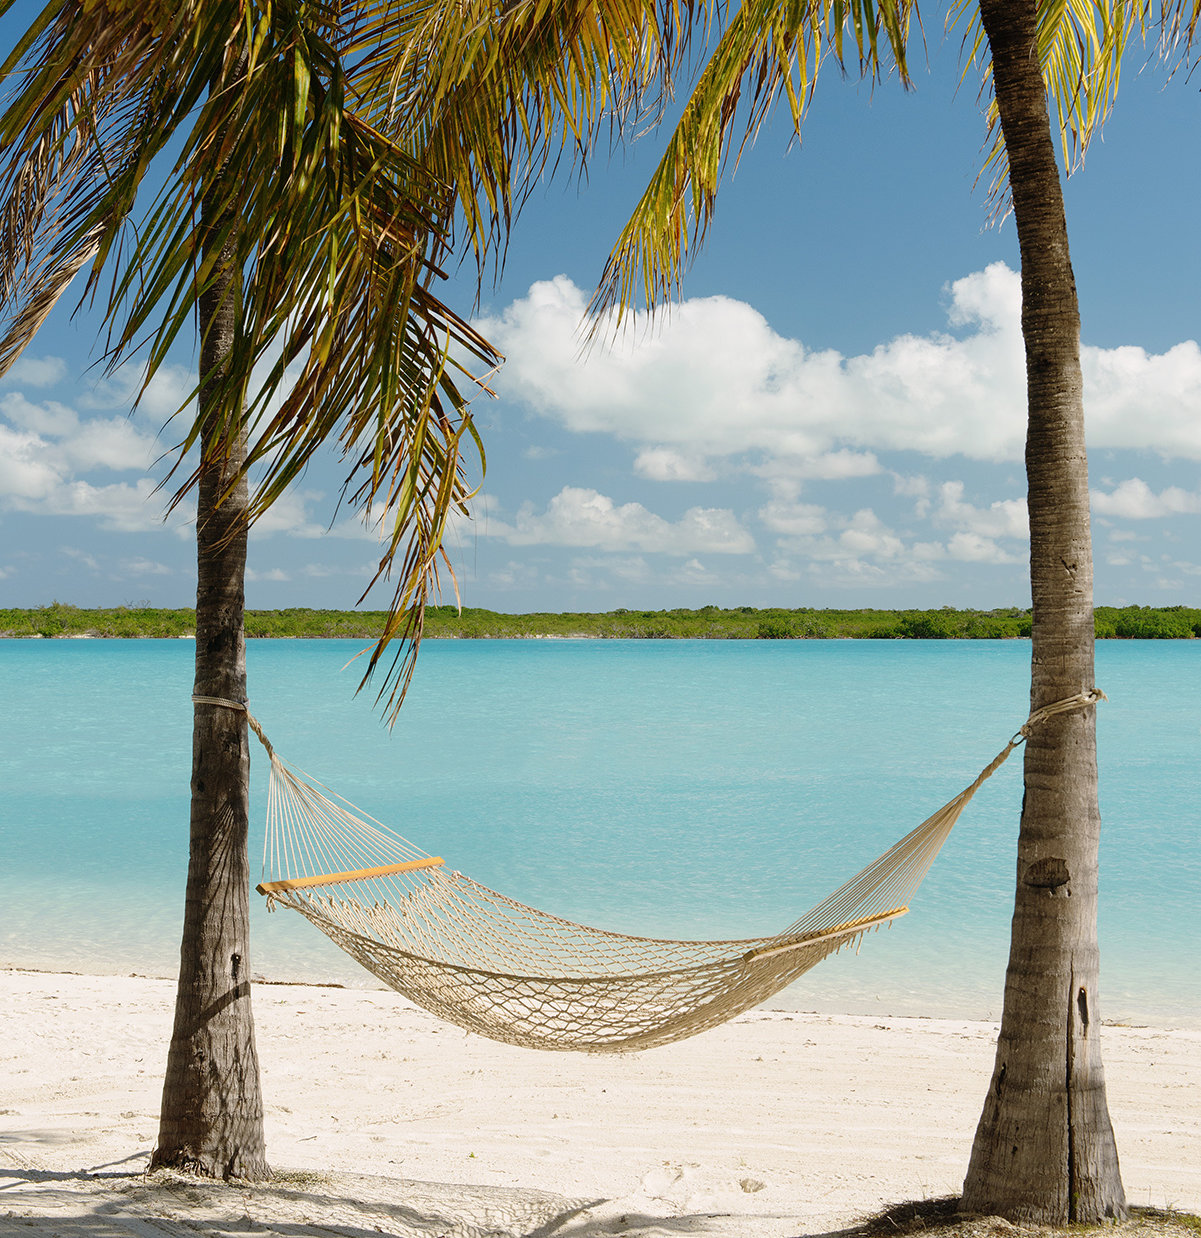 4 Companies With Vacation Incentives That'll Make YouReconsider Your Career